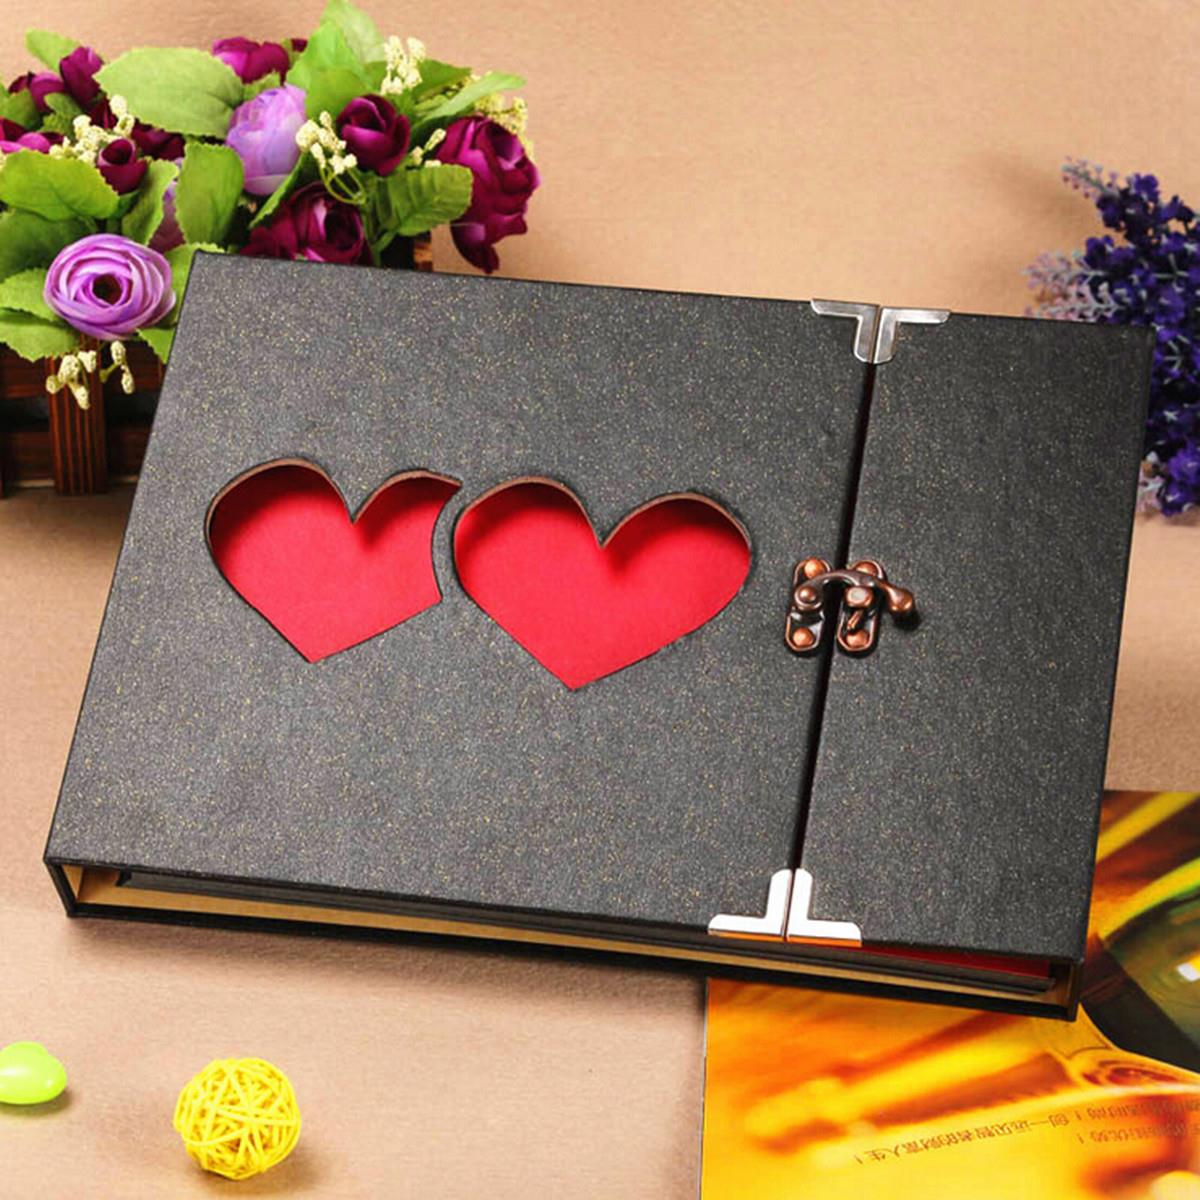 How to make scrapbook handmade